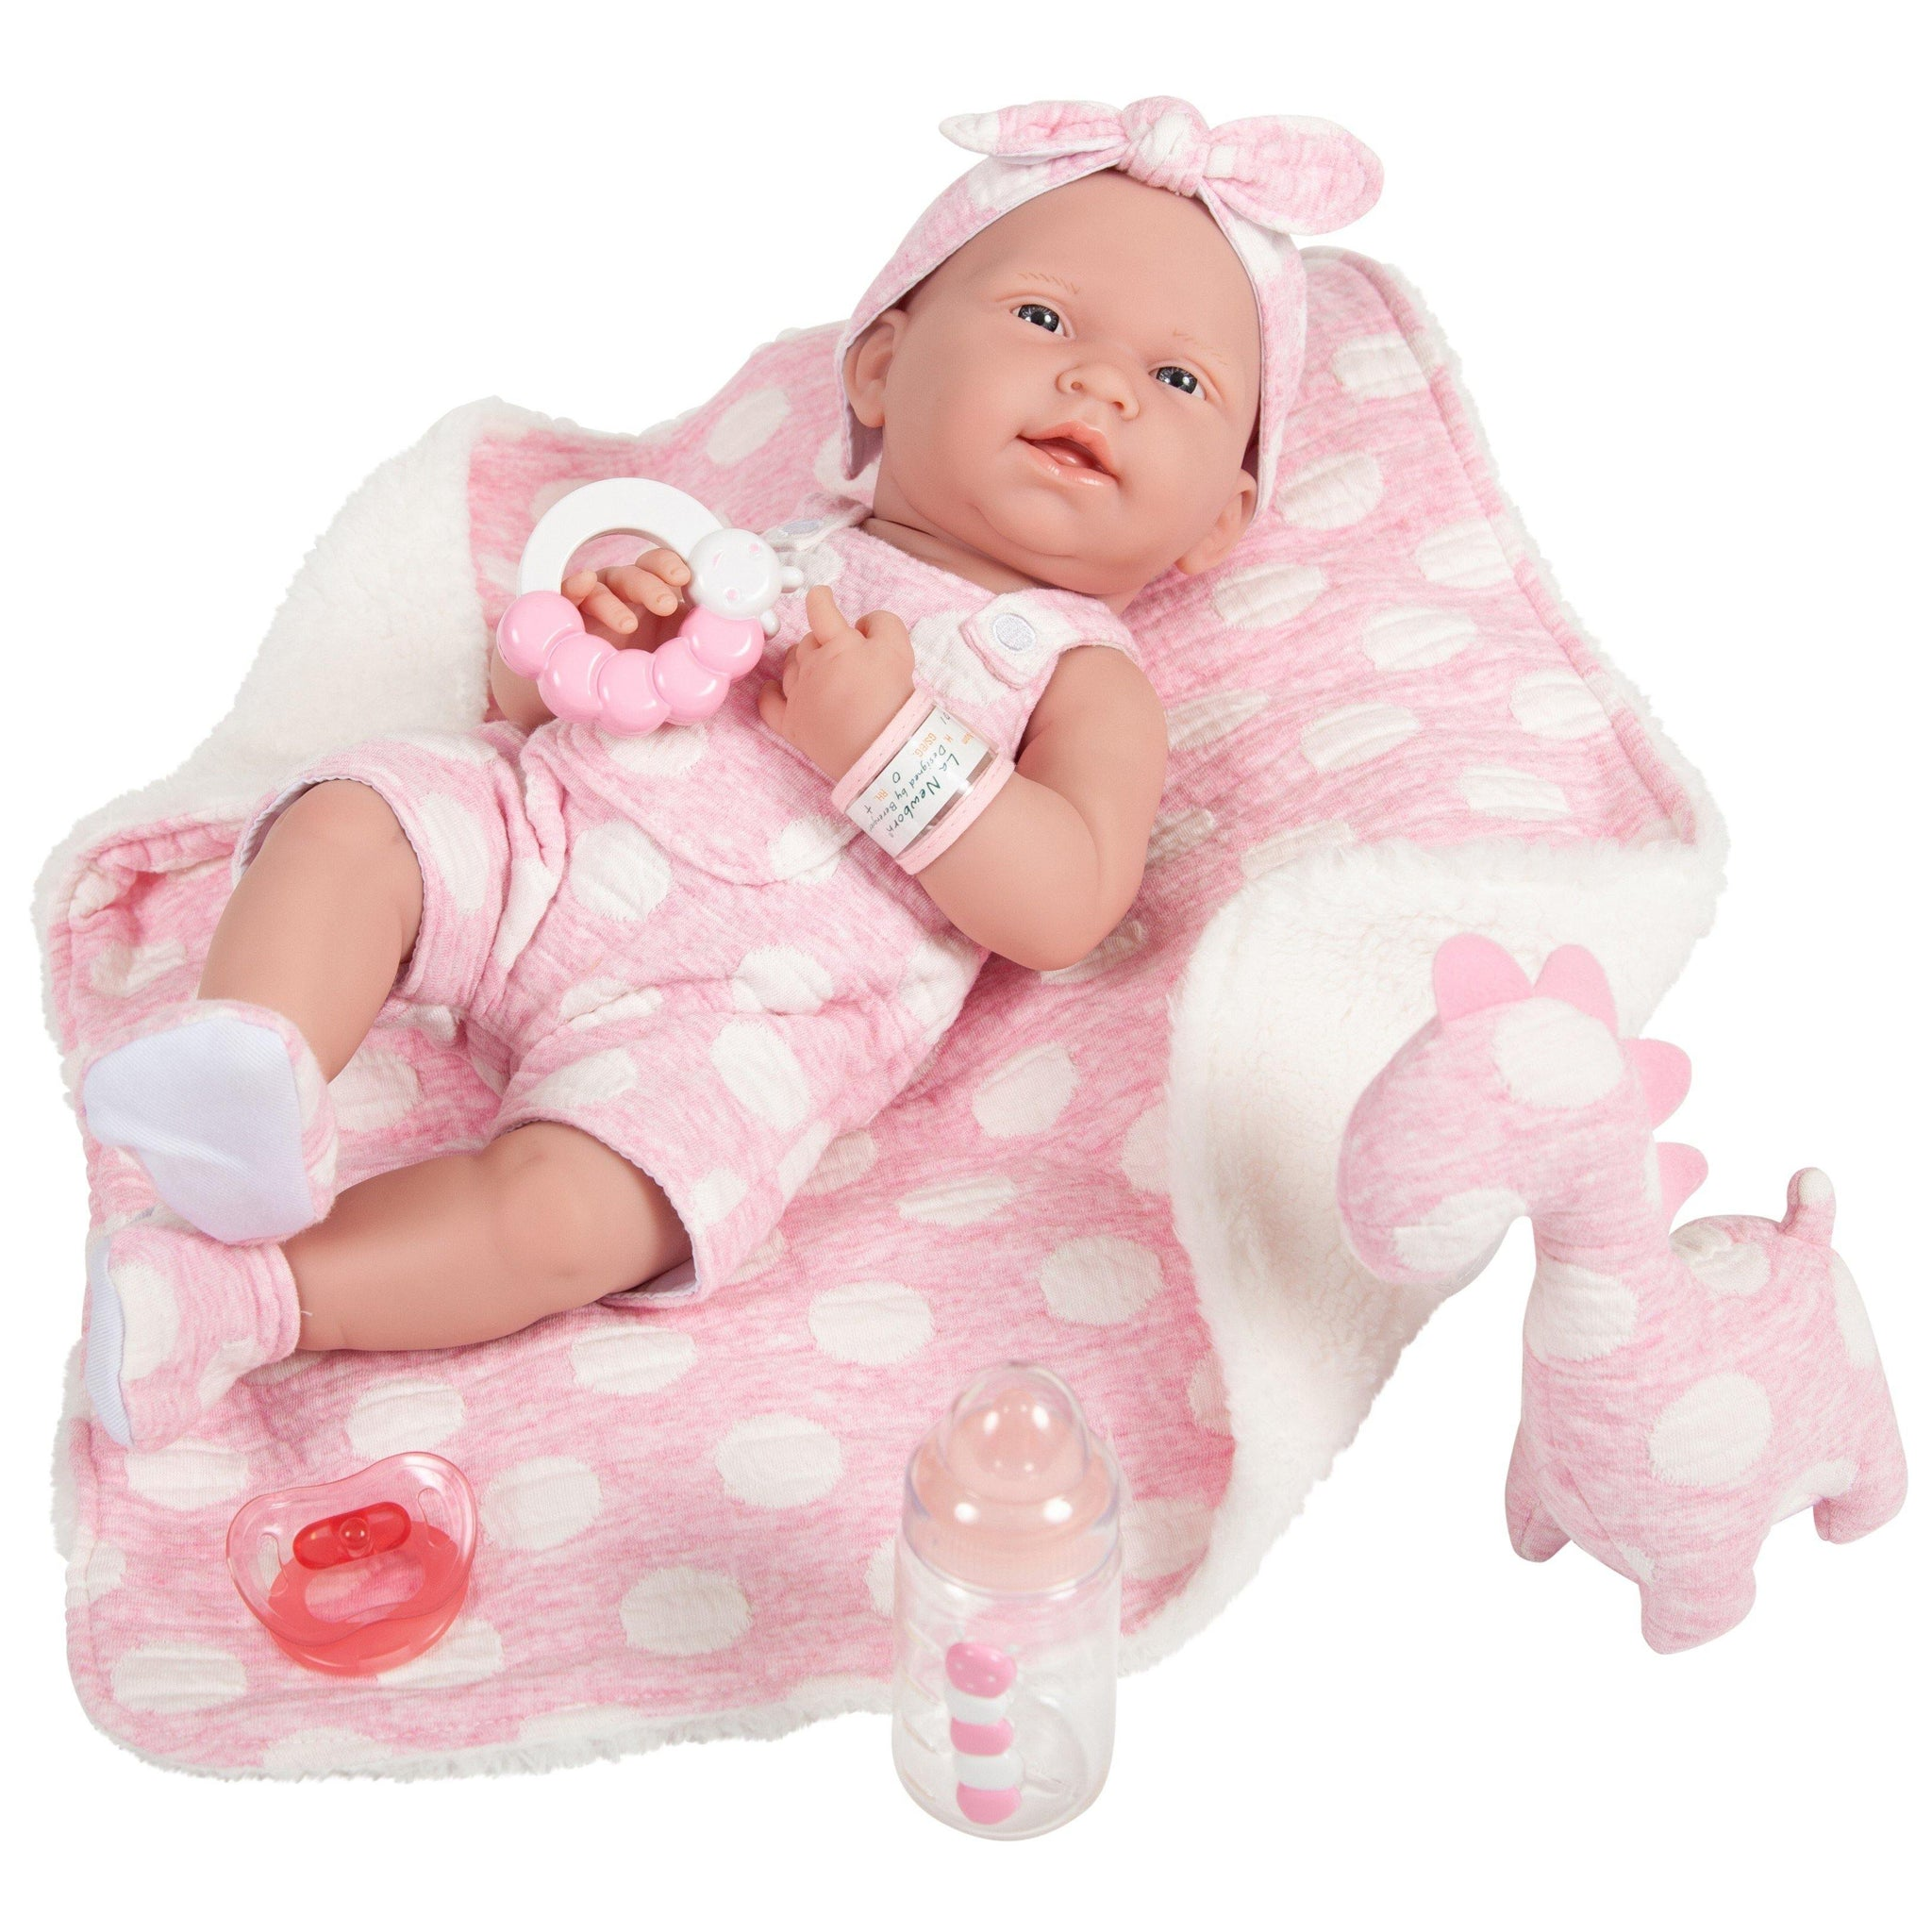 JC Toys, La Newborn AllVinyl Real Girl 15in Baby Doll-Pink with White Polka Dots